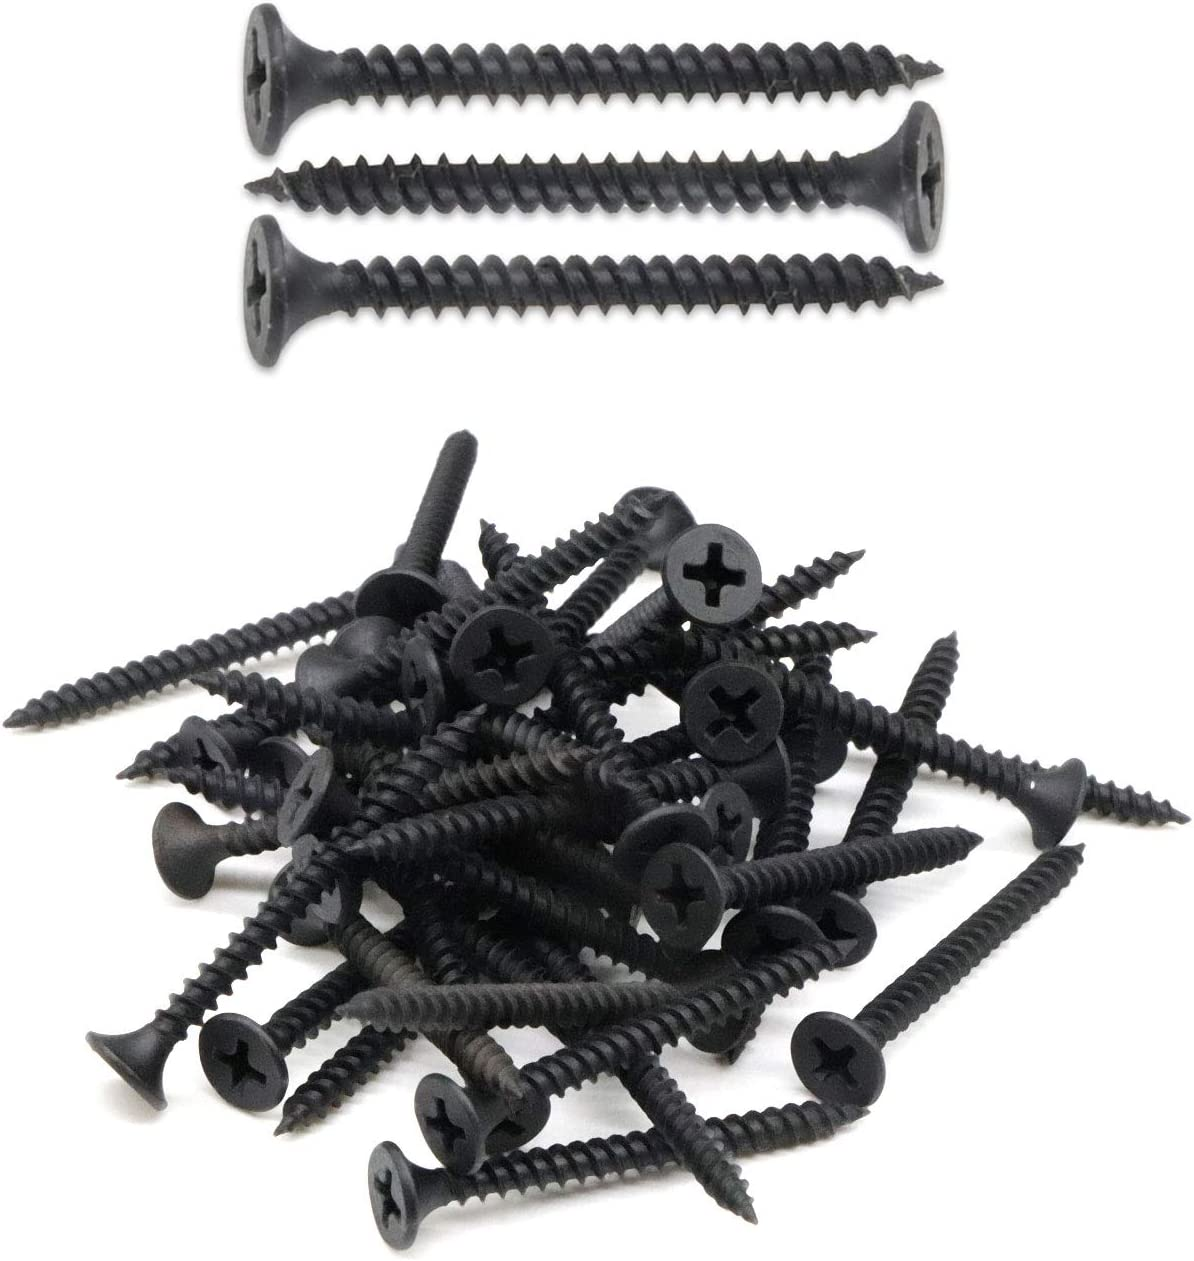 "IMScrews 50pcs #7x1-1/2"" Flat Head Phillips Drywall Screws Fine Thread Sharp Point Wood Screw Assortment Kit, Carbon Steel 1022A, Black Phosphate"